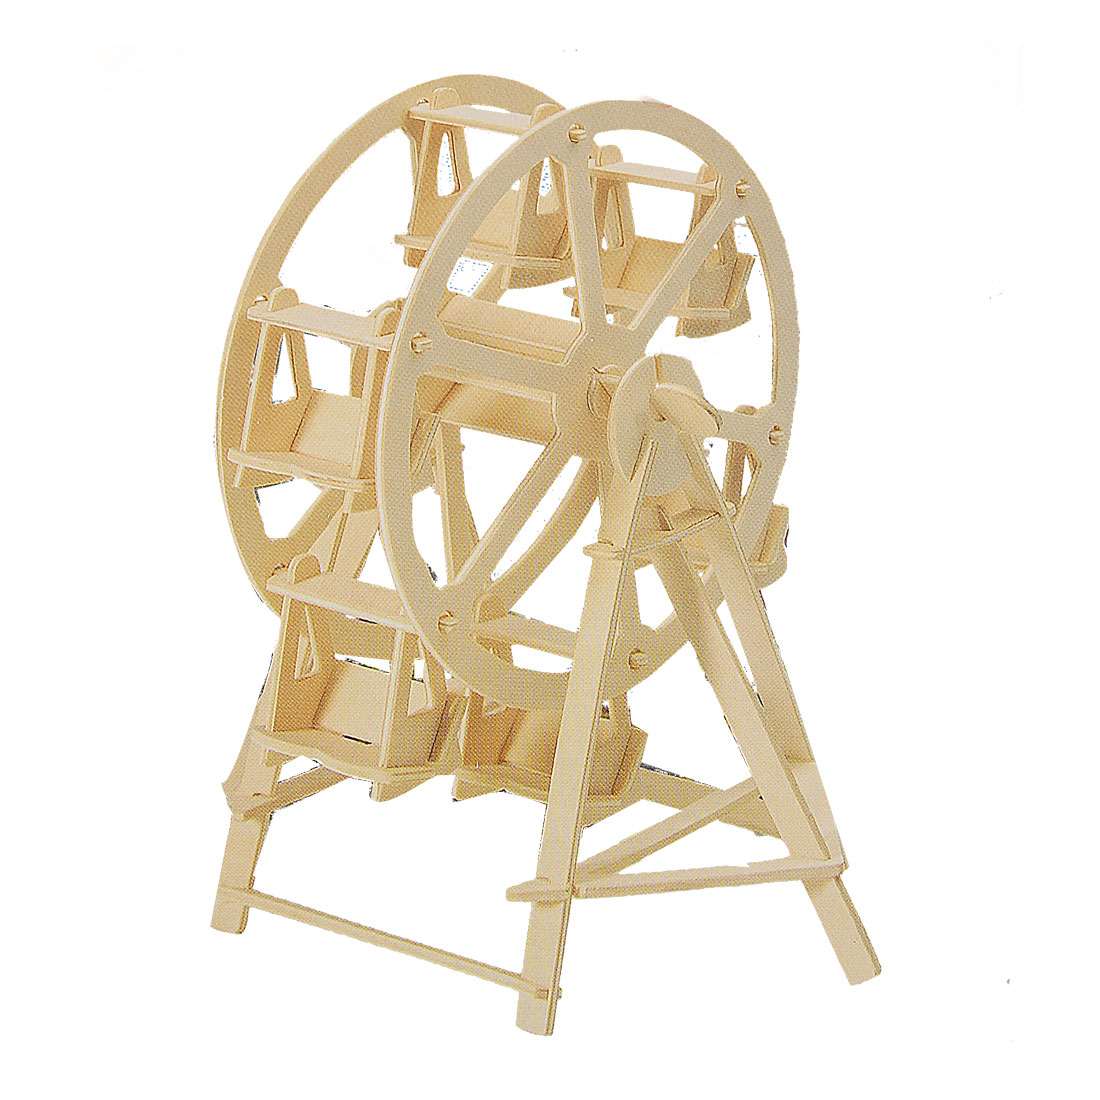 Ferris Wheel Design Wooden Construction Kit Woodcraft Assemble Puzzle Toy